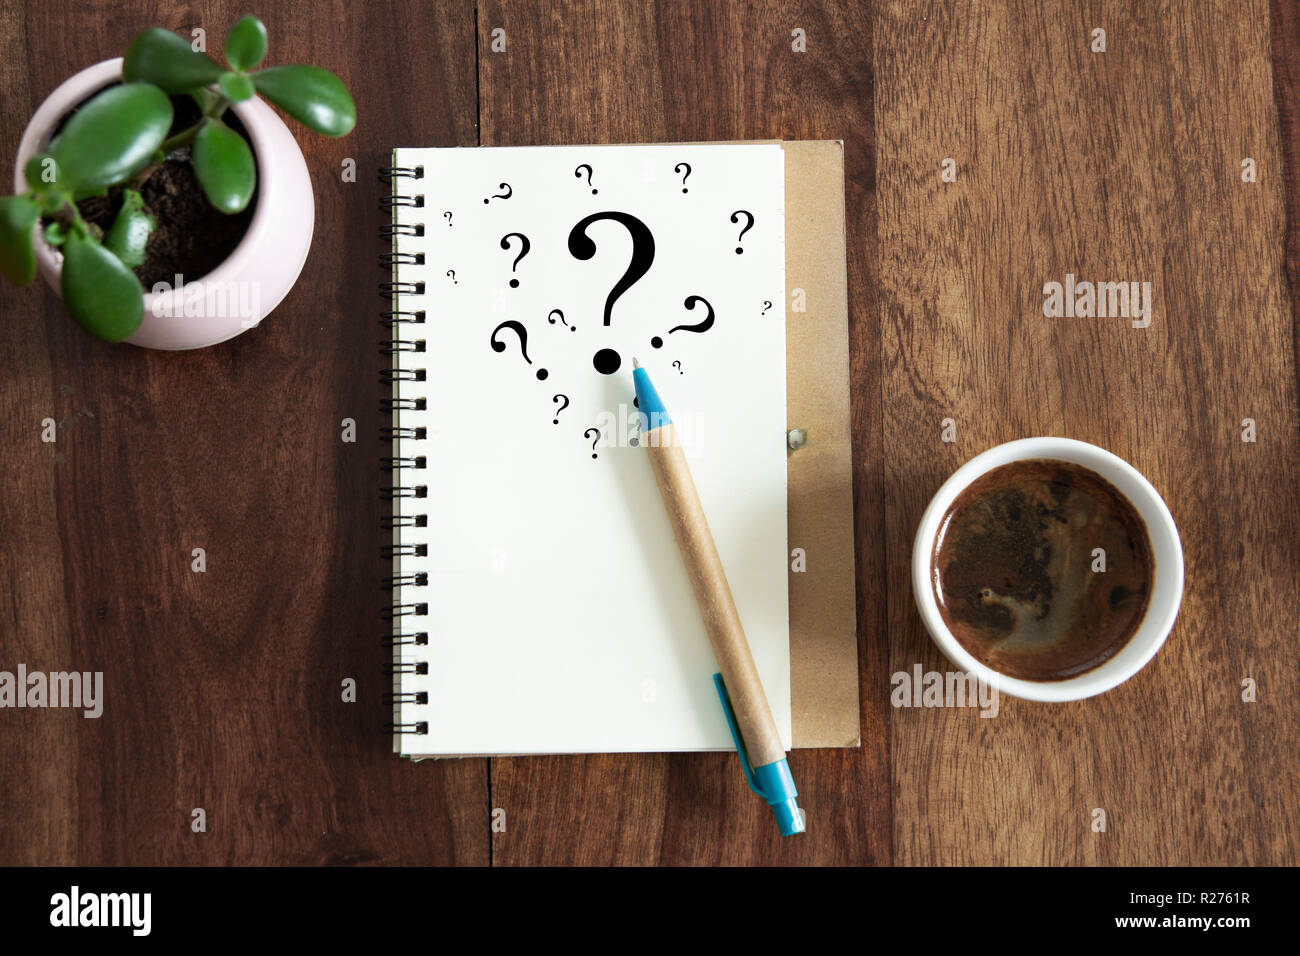 question mark symbols in notebook laying on office desk. flat lay view. - Stock Image